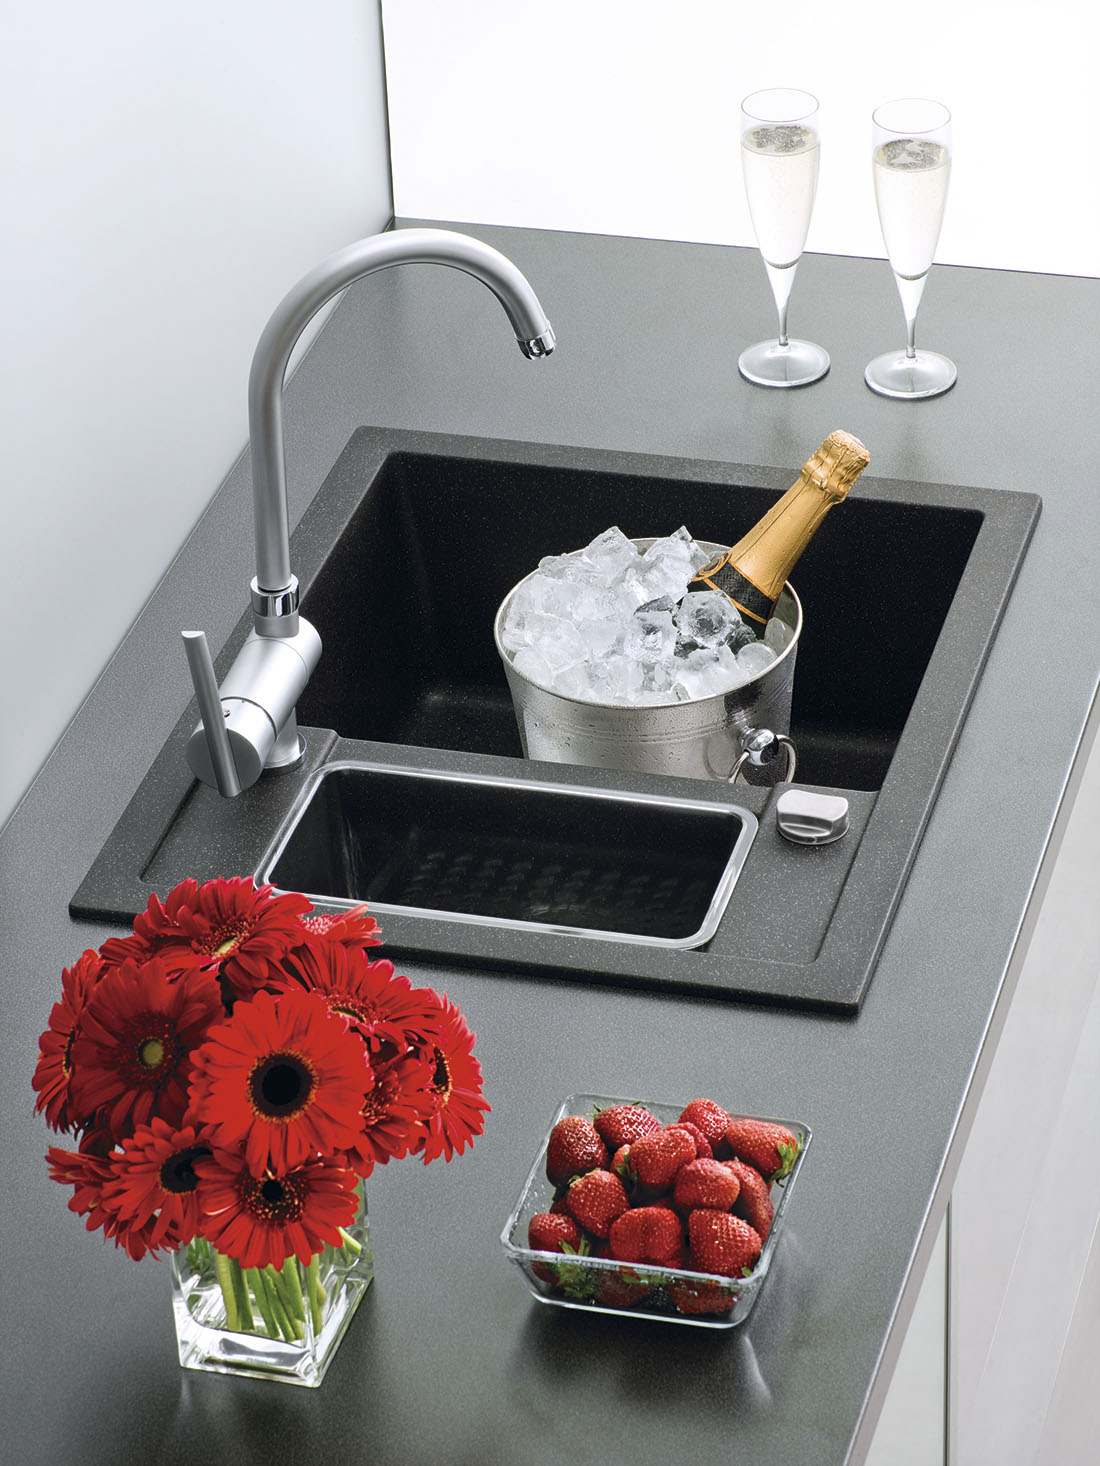 Sinks CRYSTAL 615.1 Metalblack